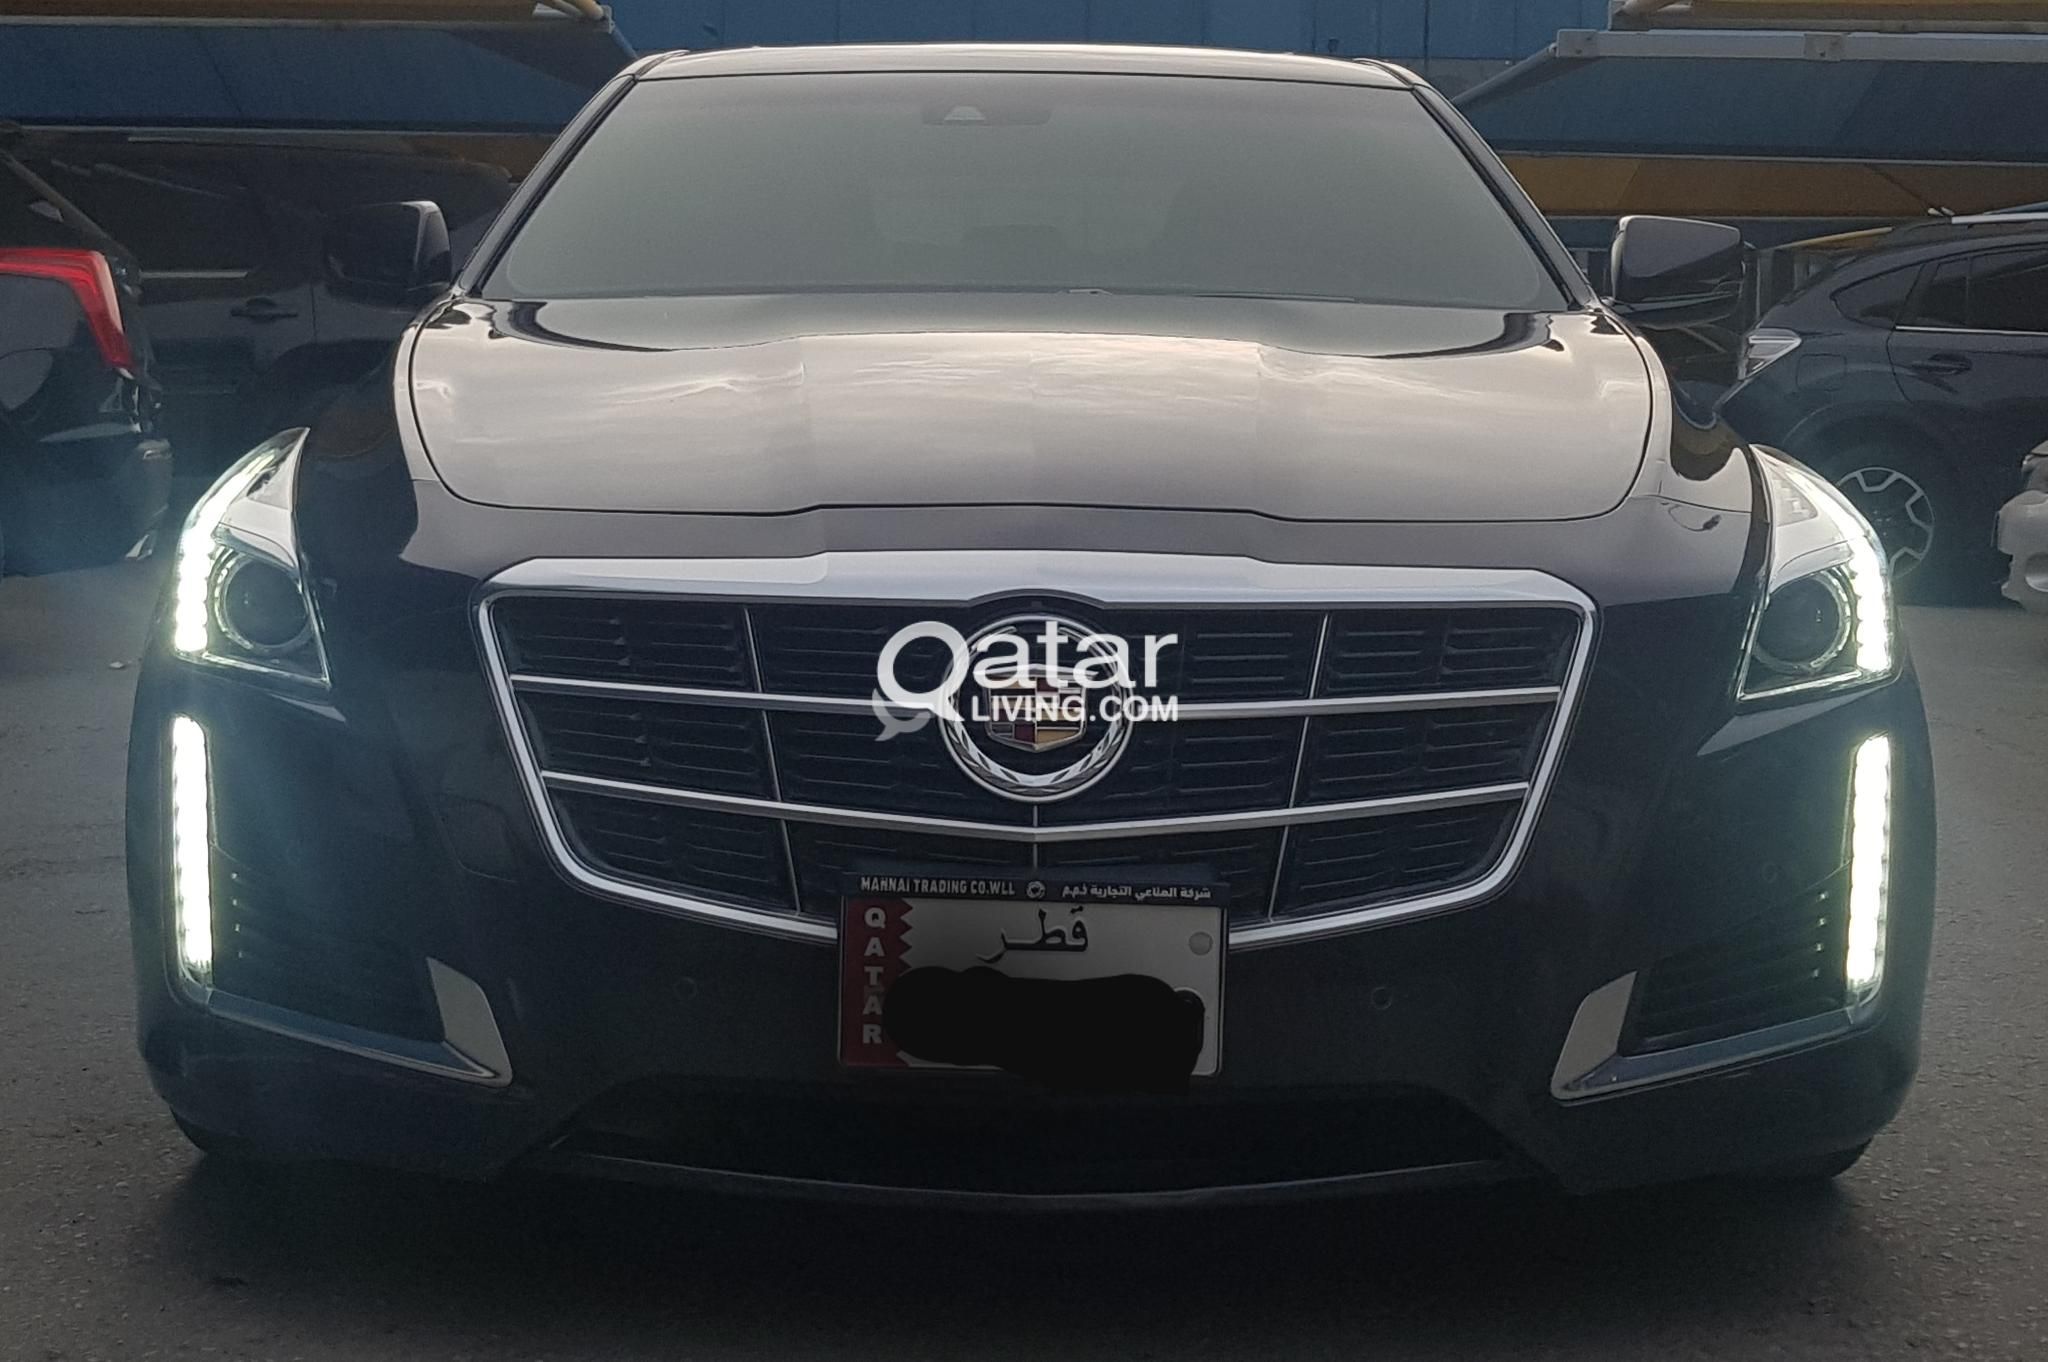 2014 cadillac cts performance package   qatar living